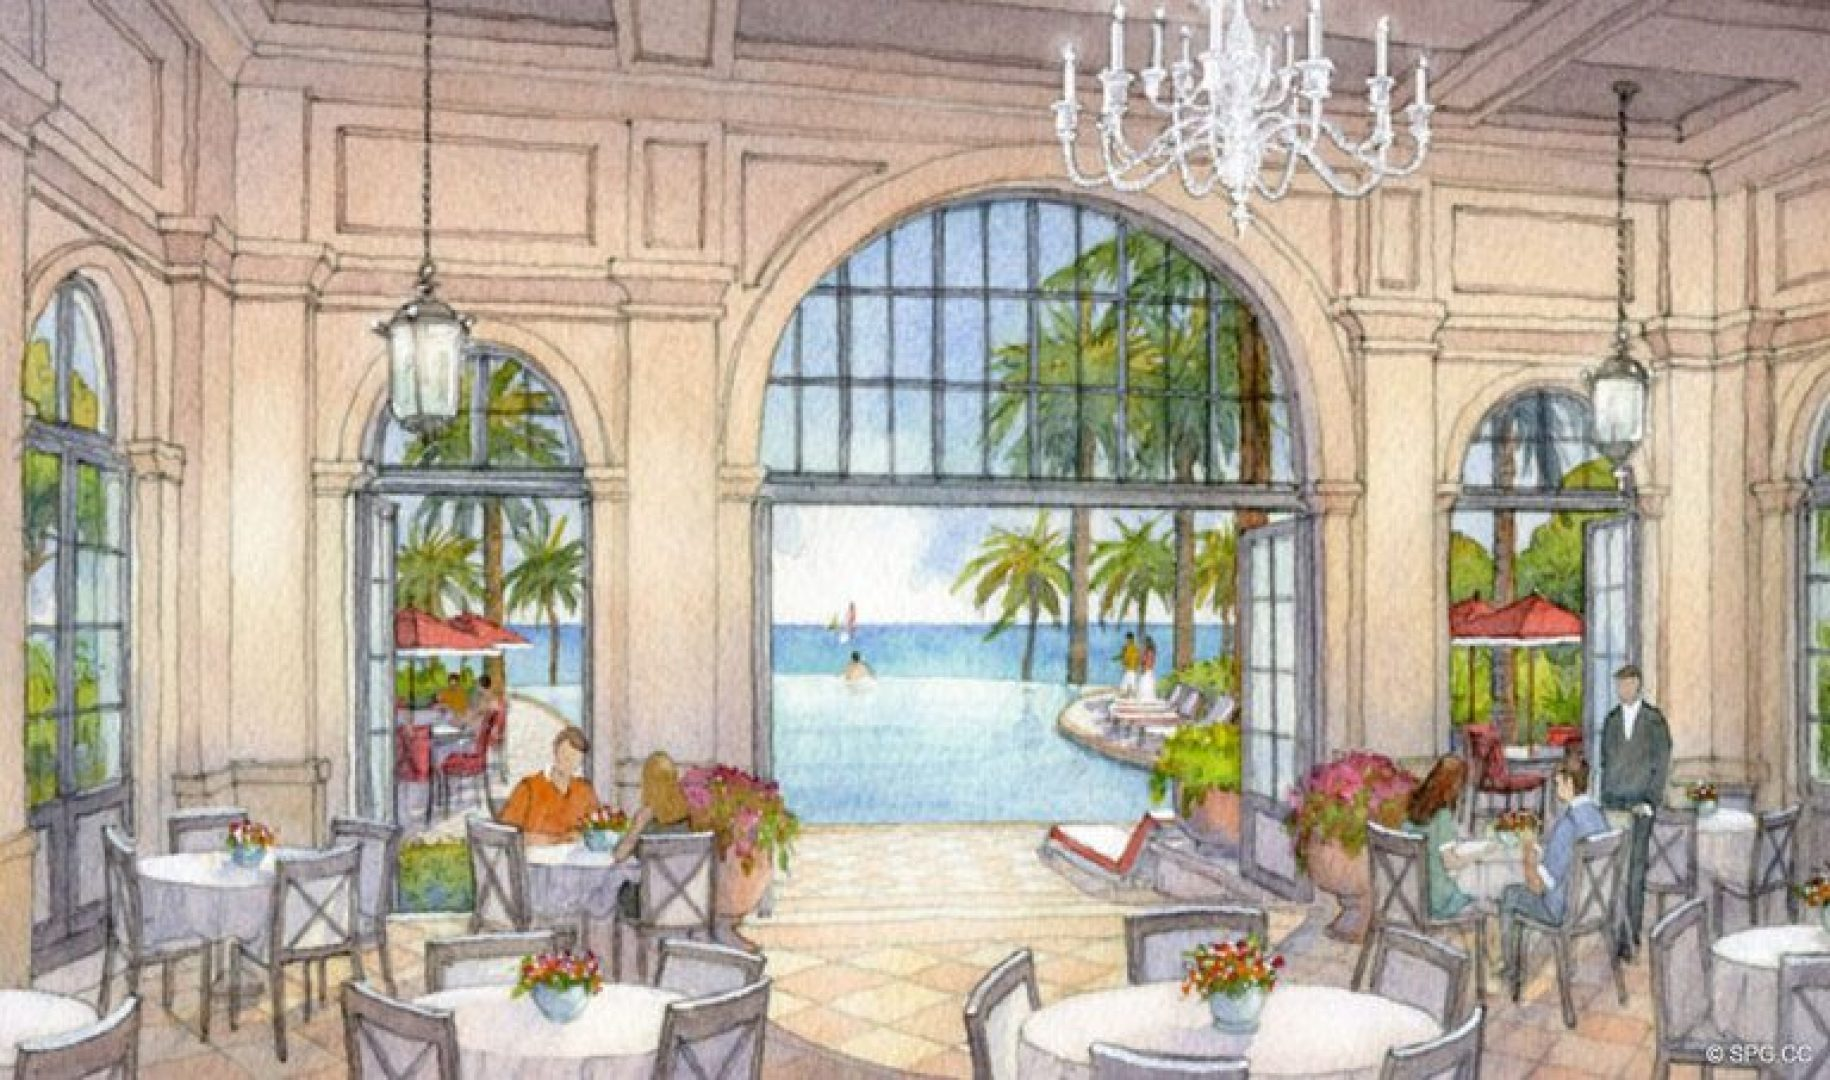 Artist Rendering of the Estates at Acqualina, Luxury Oceanfront Condos in Sunny Isles Beach, Florida 33160